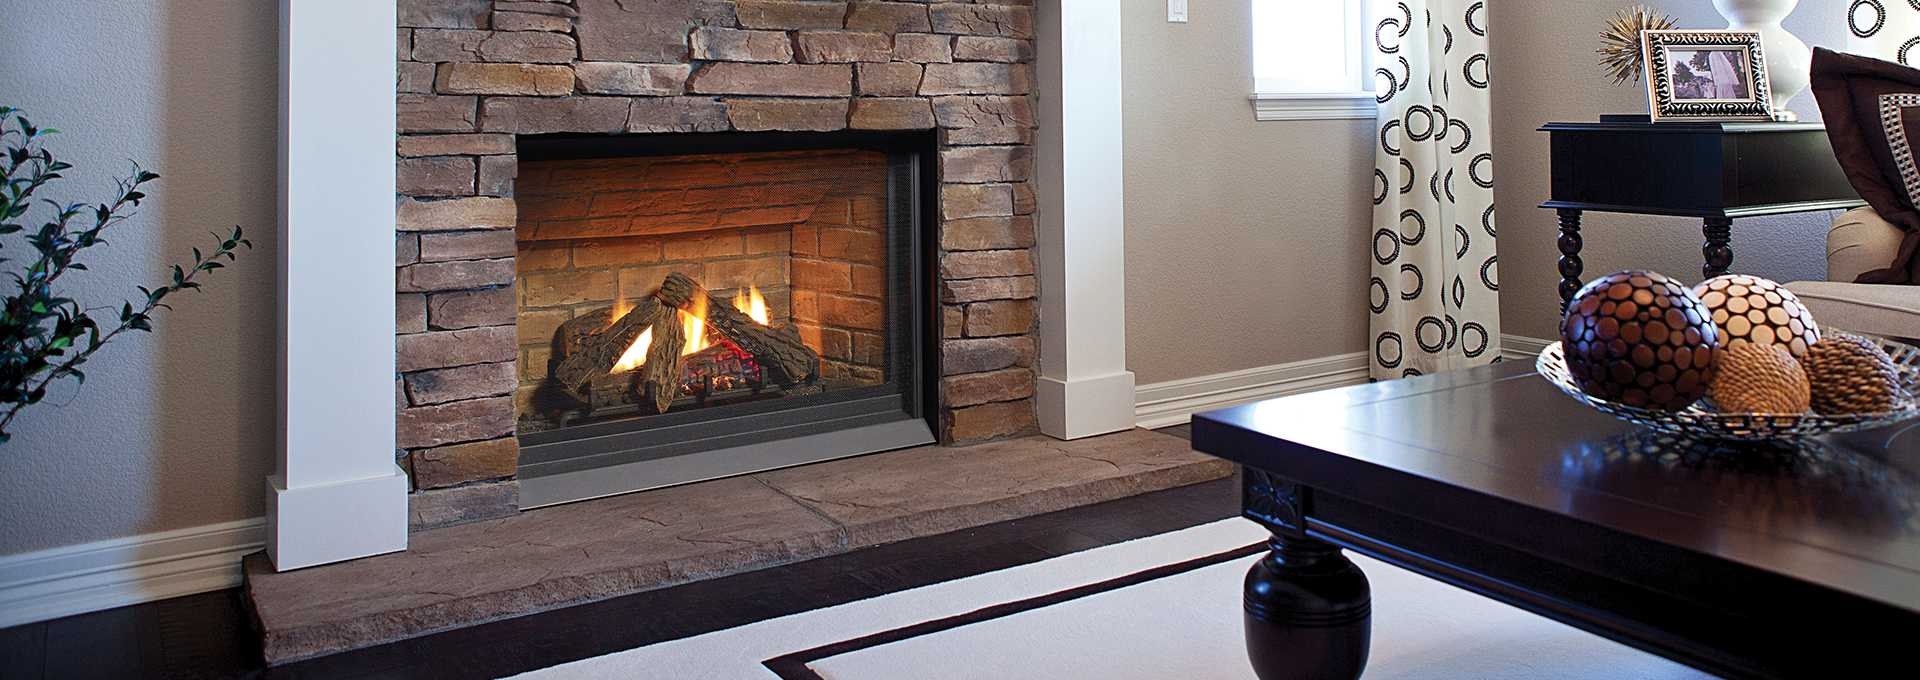 Propane Fireplace Repair Near Me Traditional Gas Fireplaces Regency Fireplace Products